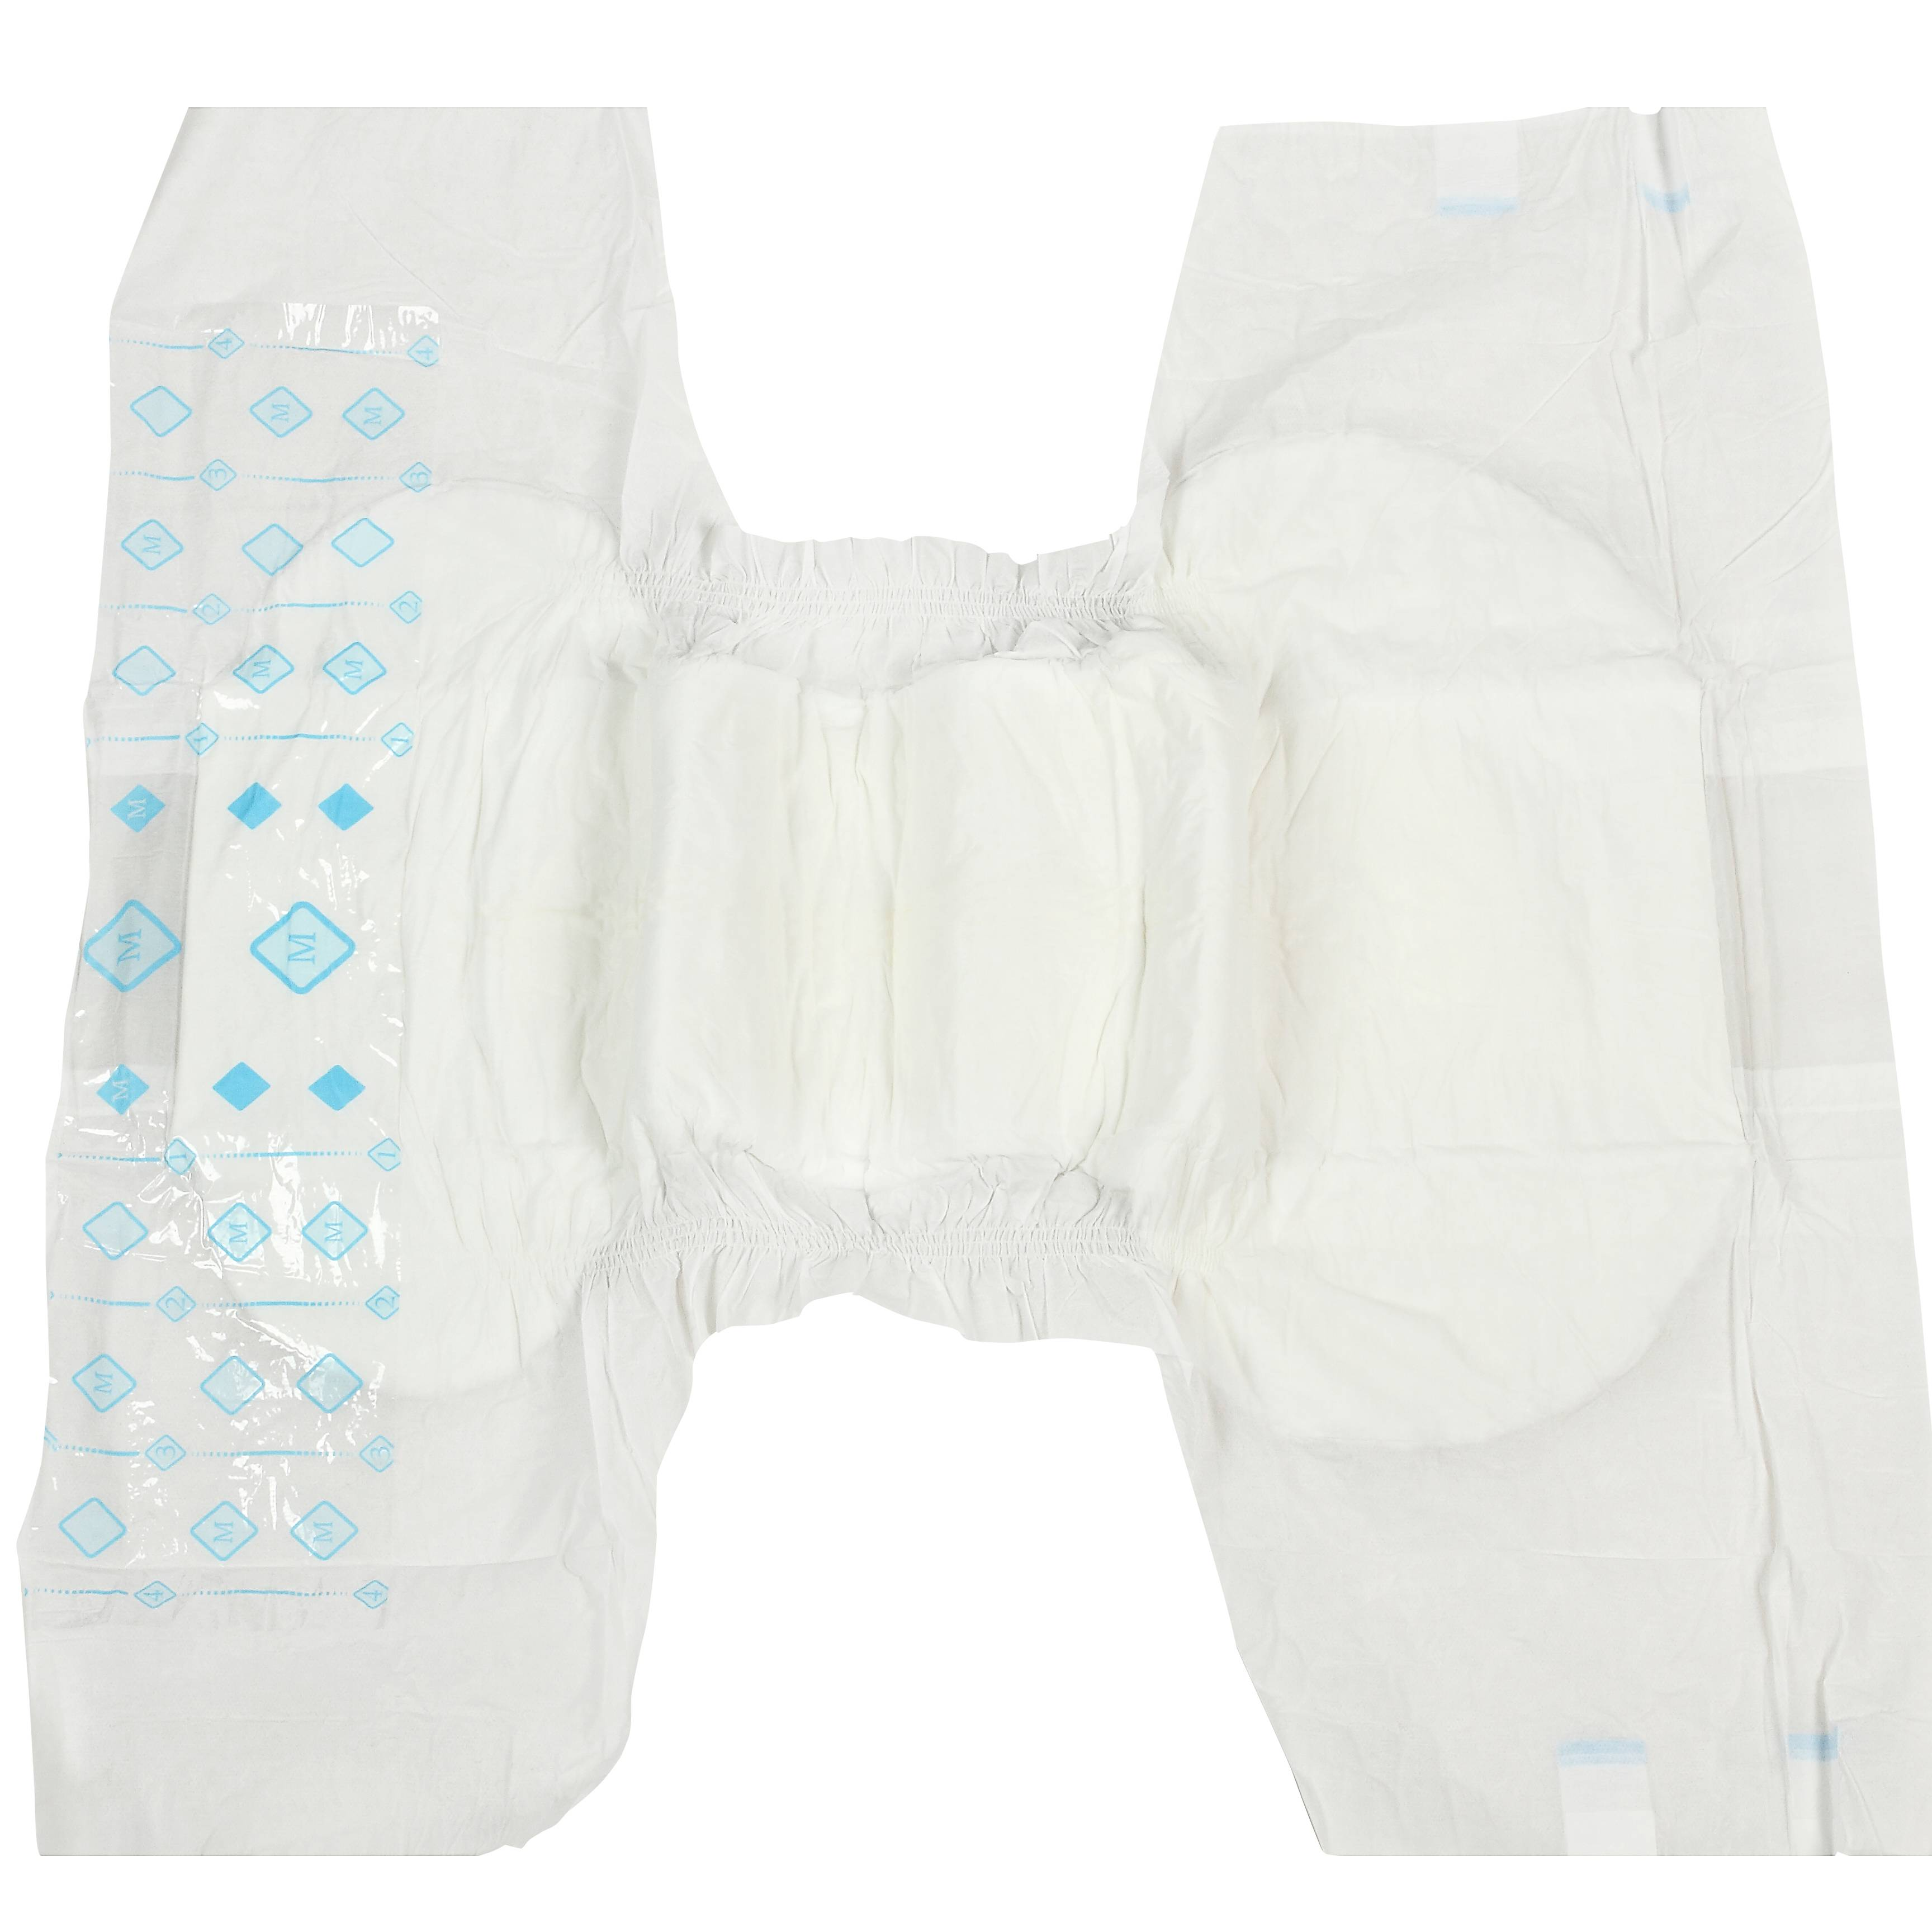 China Factory Price Disposable OEM Adult Diaper